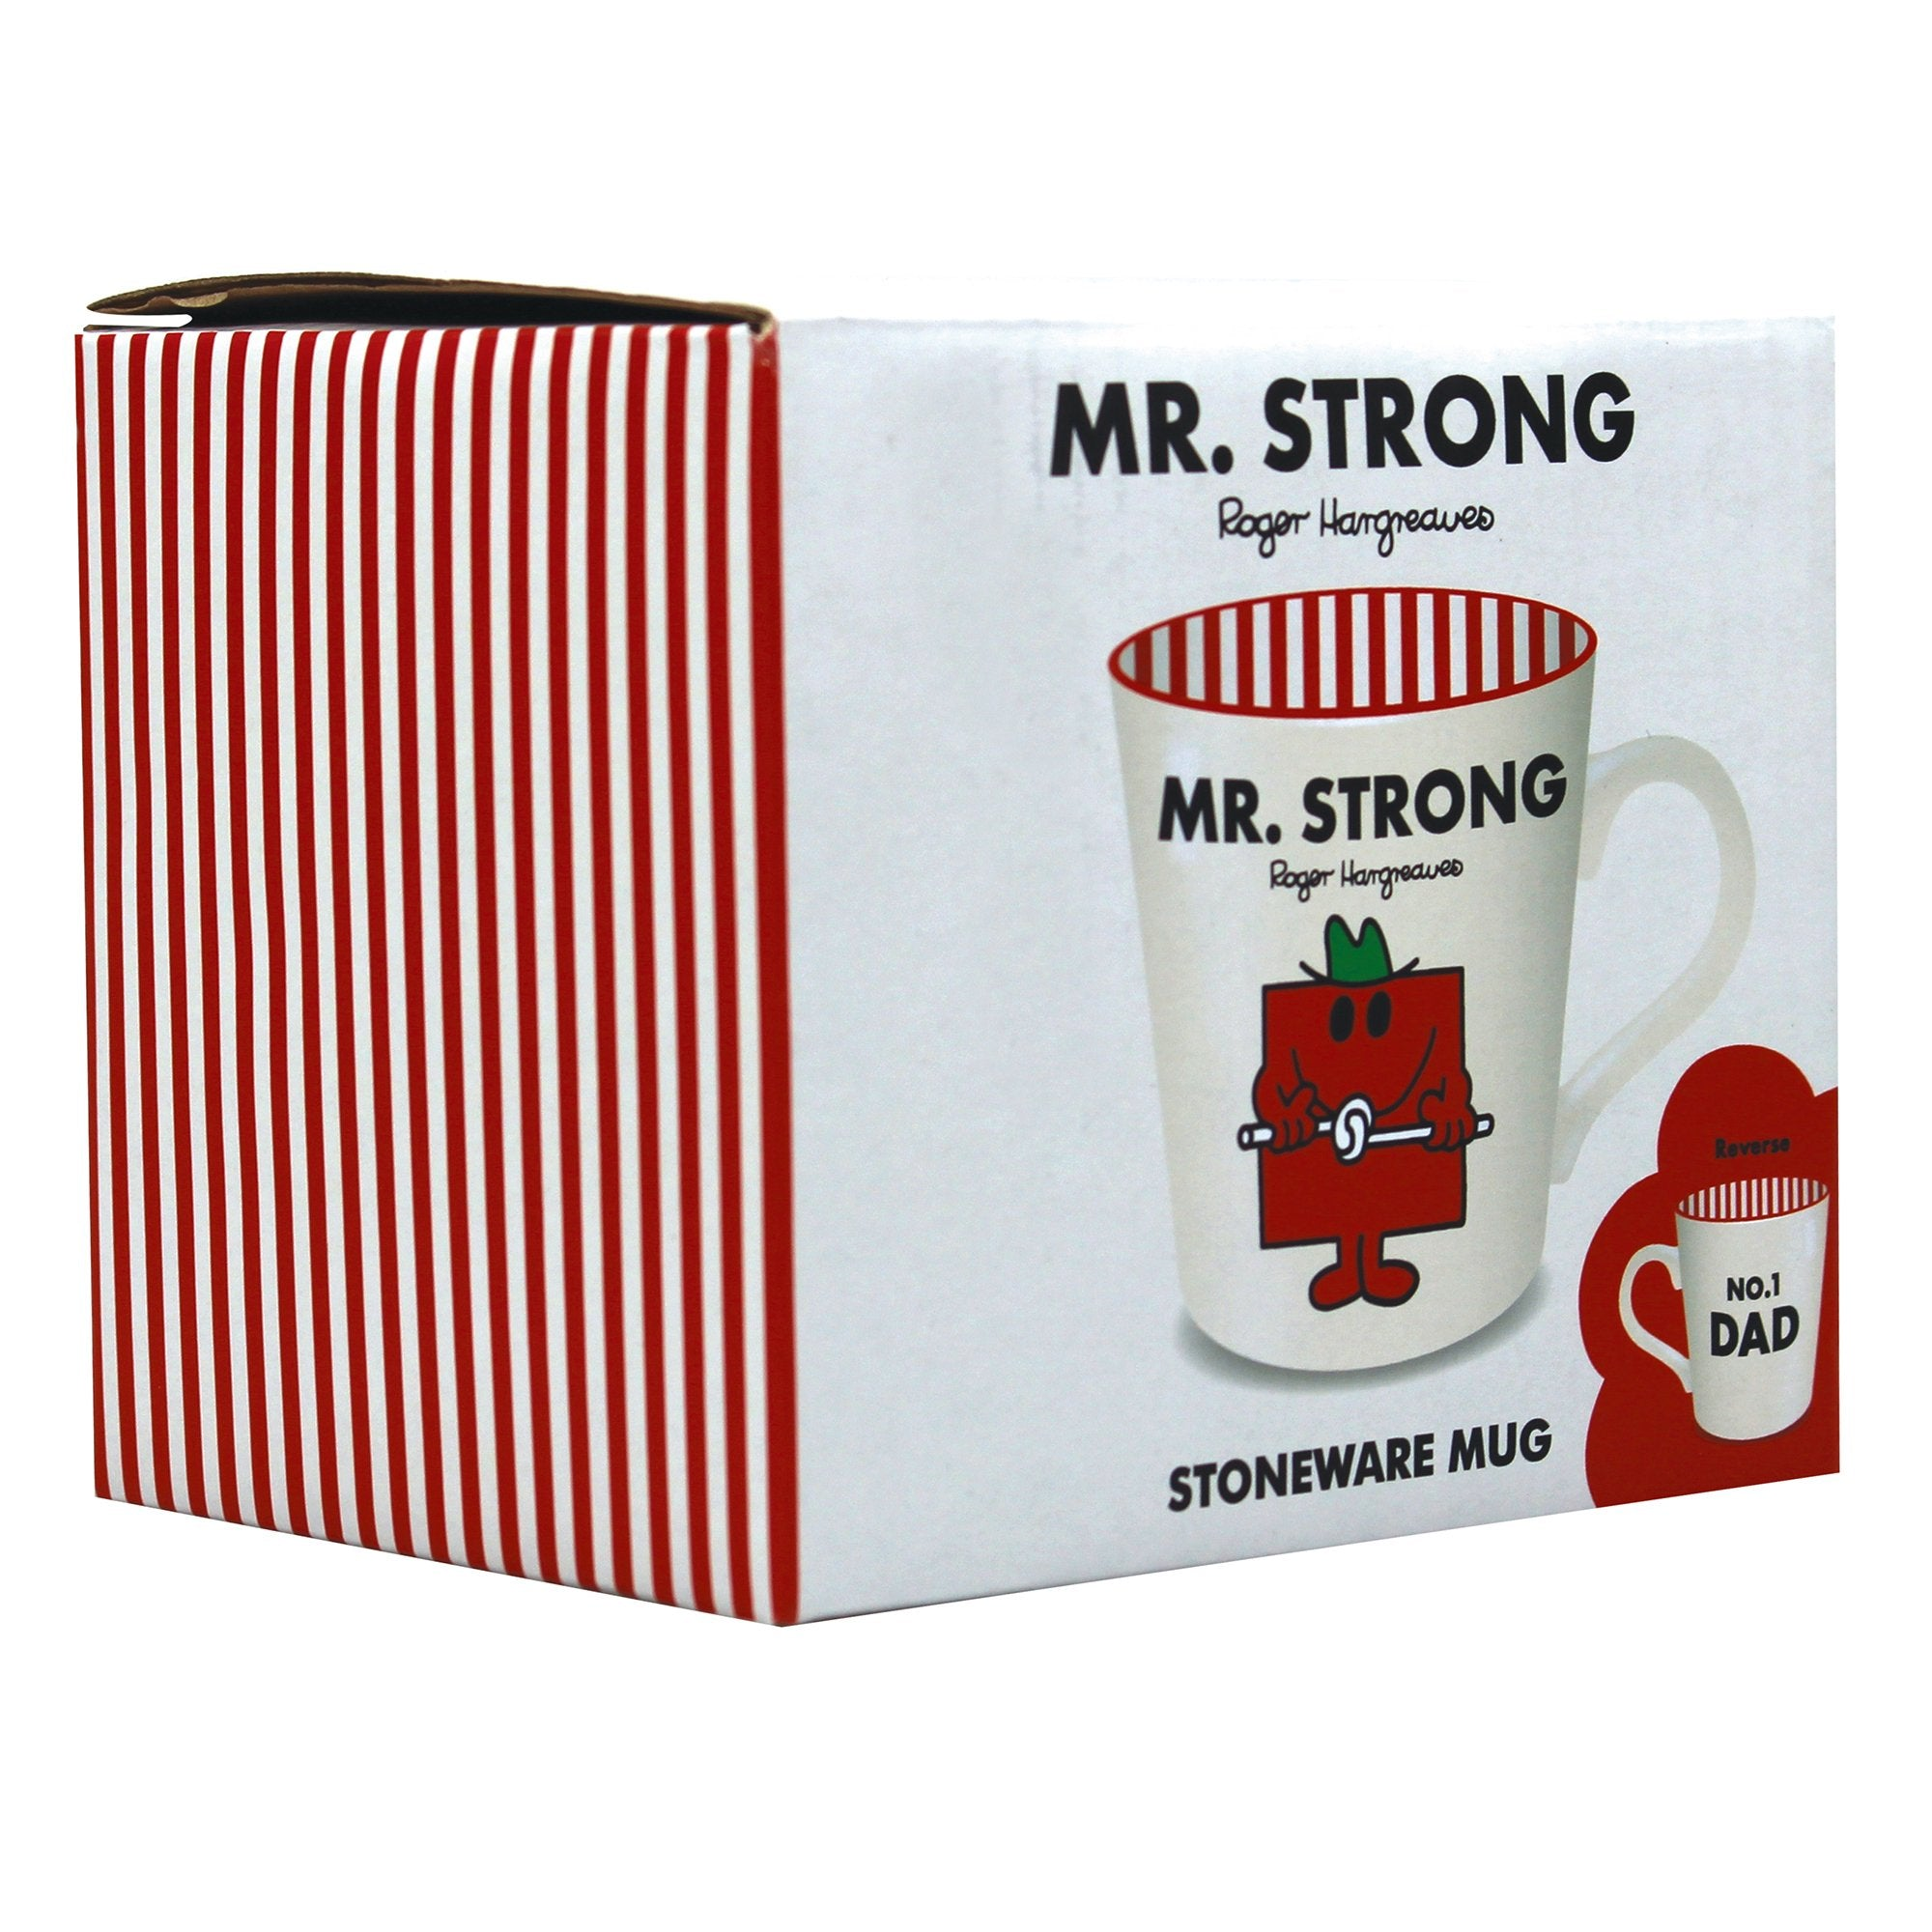 Mr. Men Mug - Mr. Strong - Half Moon Bay US